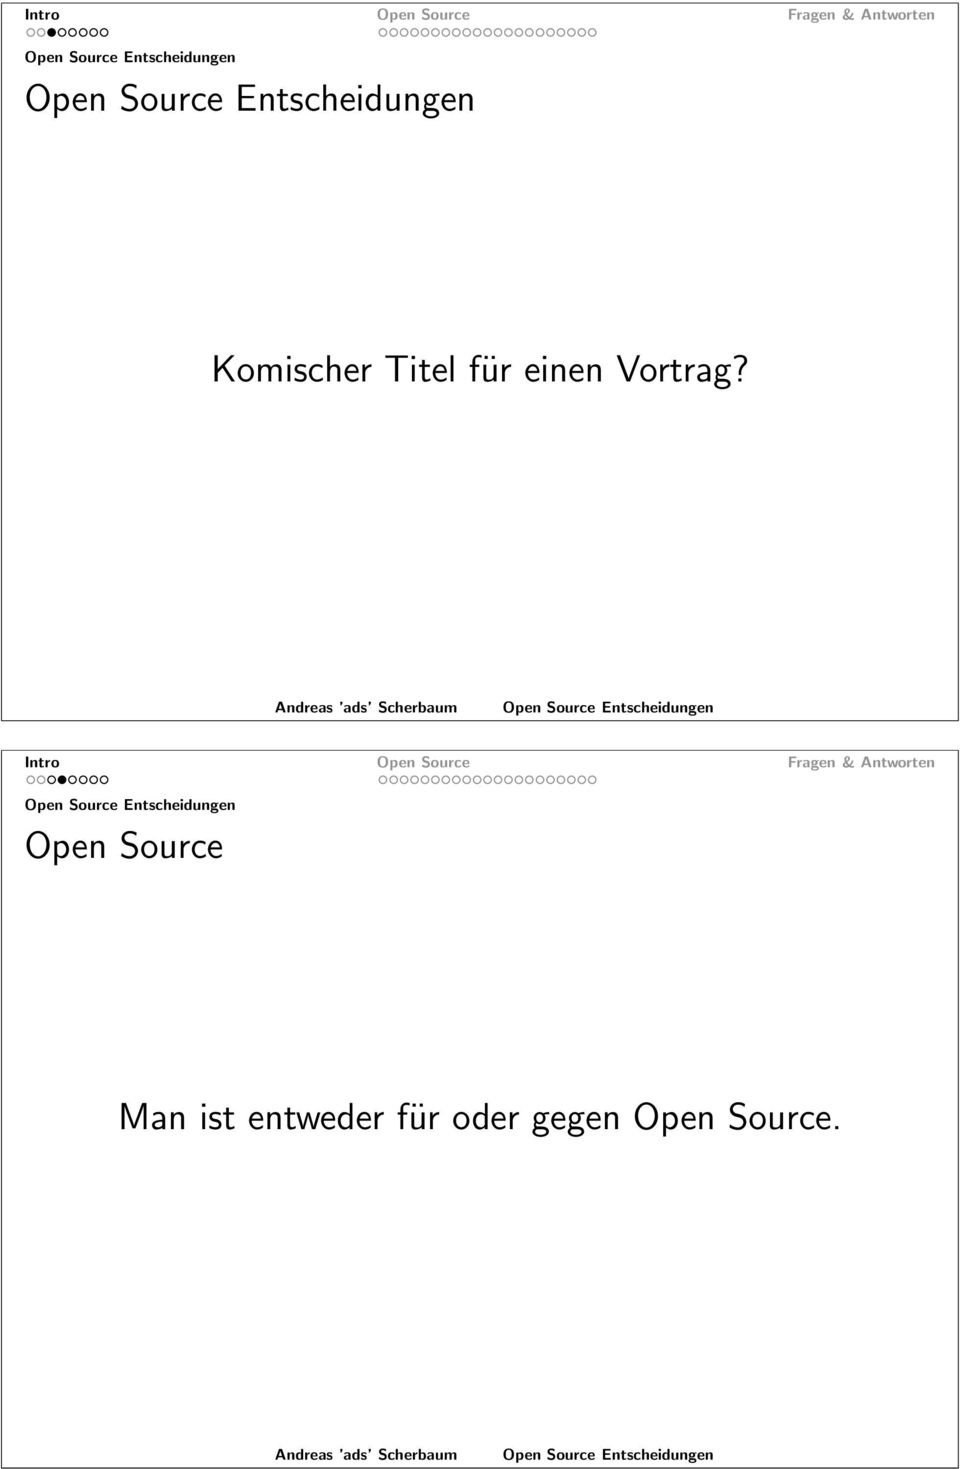 Intro Open Source Open Source